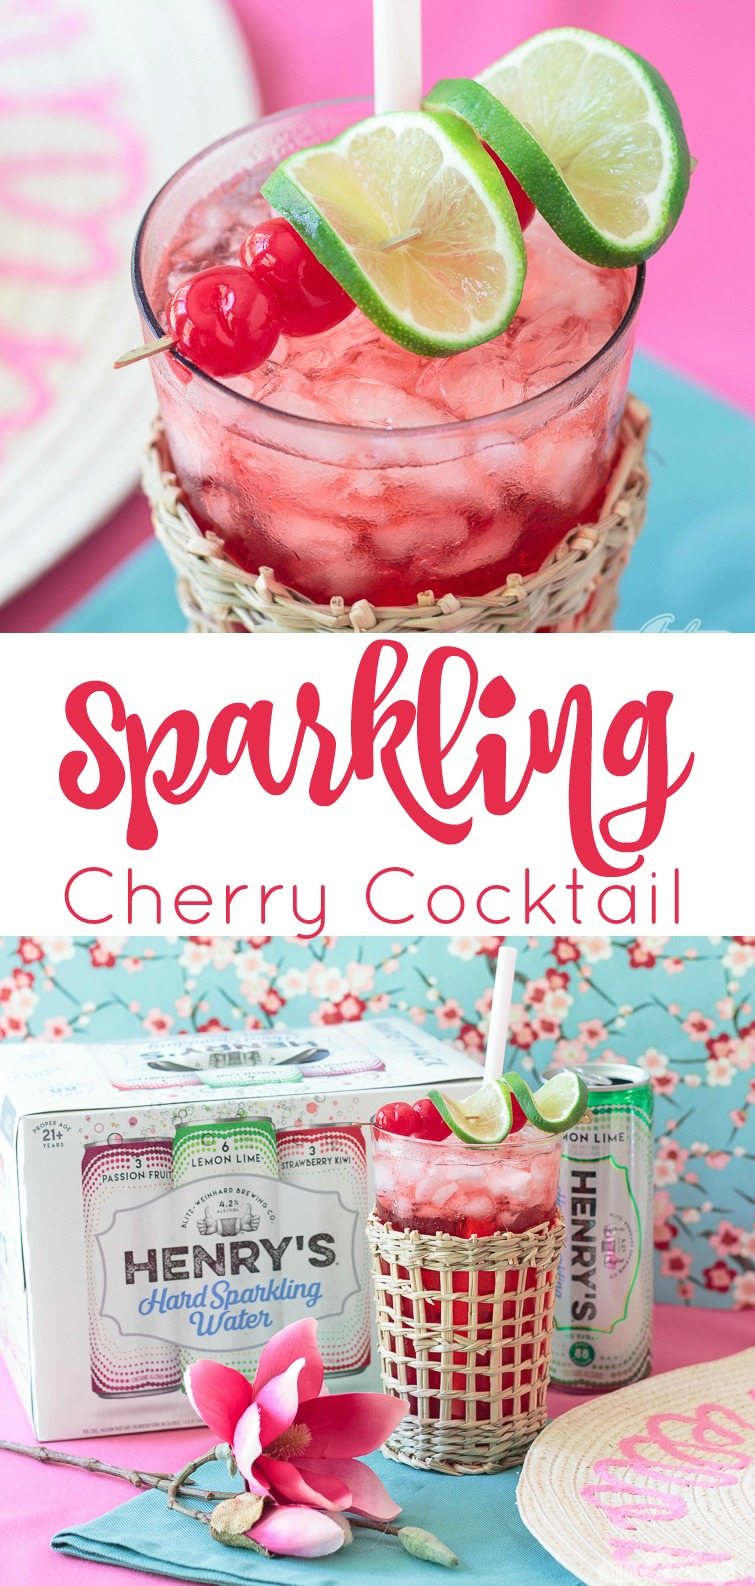 Cherry Cocktail with Vanilla Vodka is the Perfect Summertime Sipper